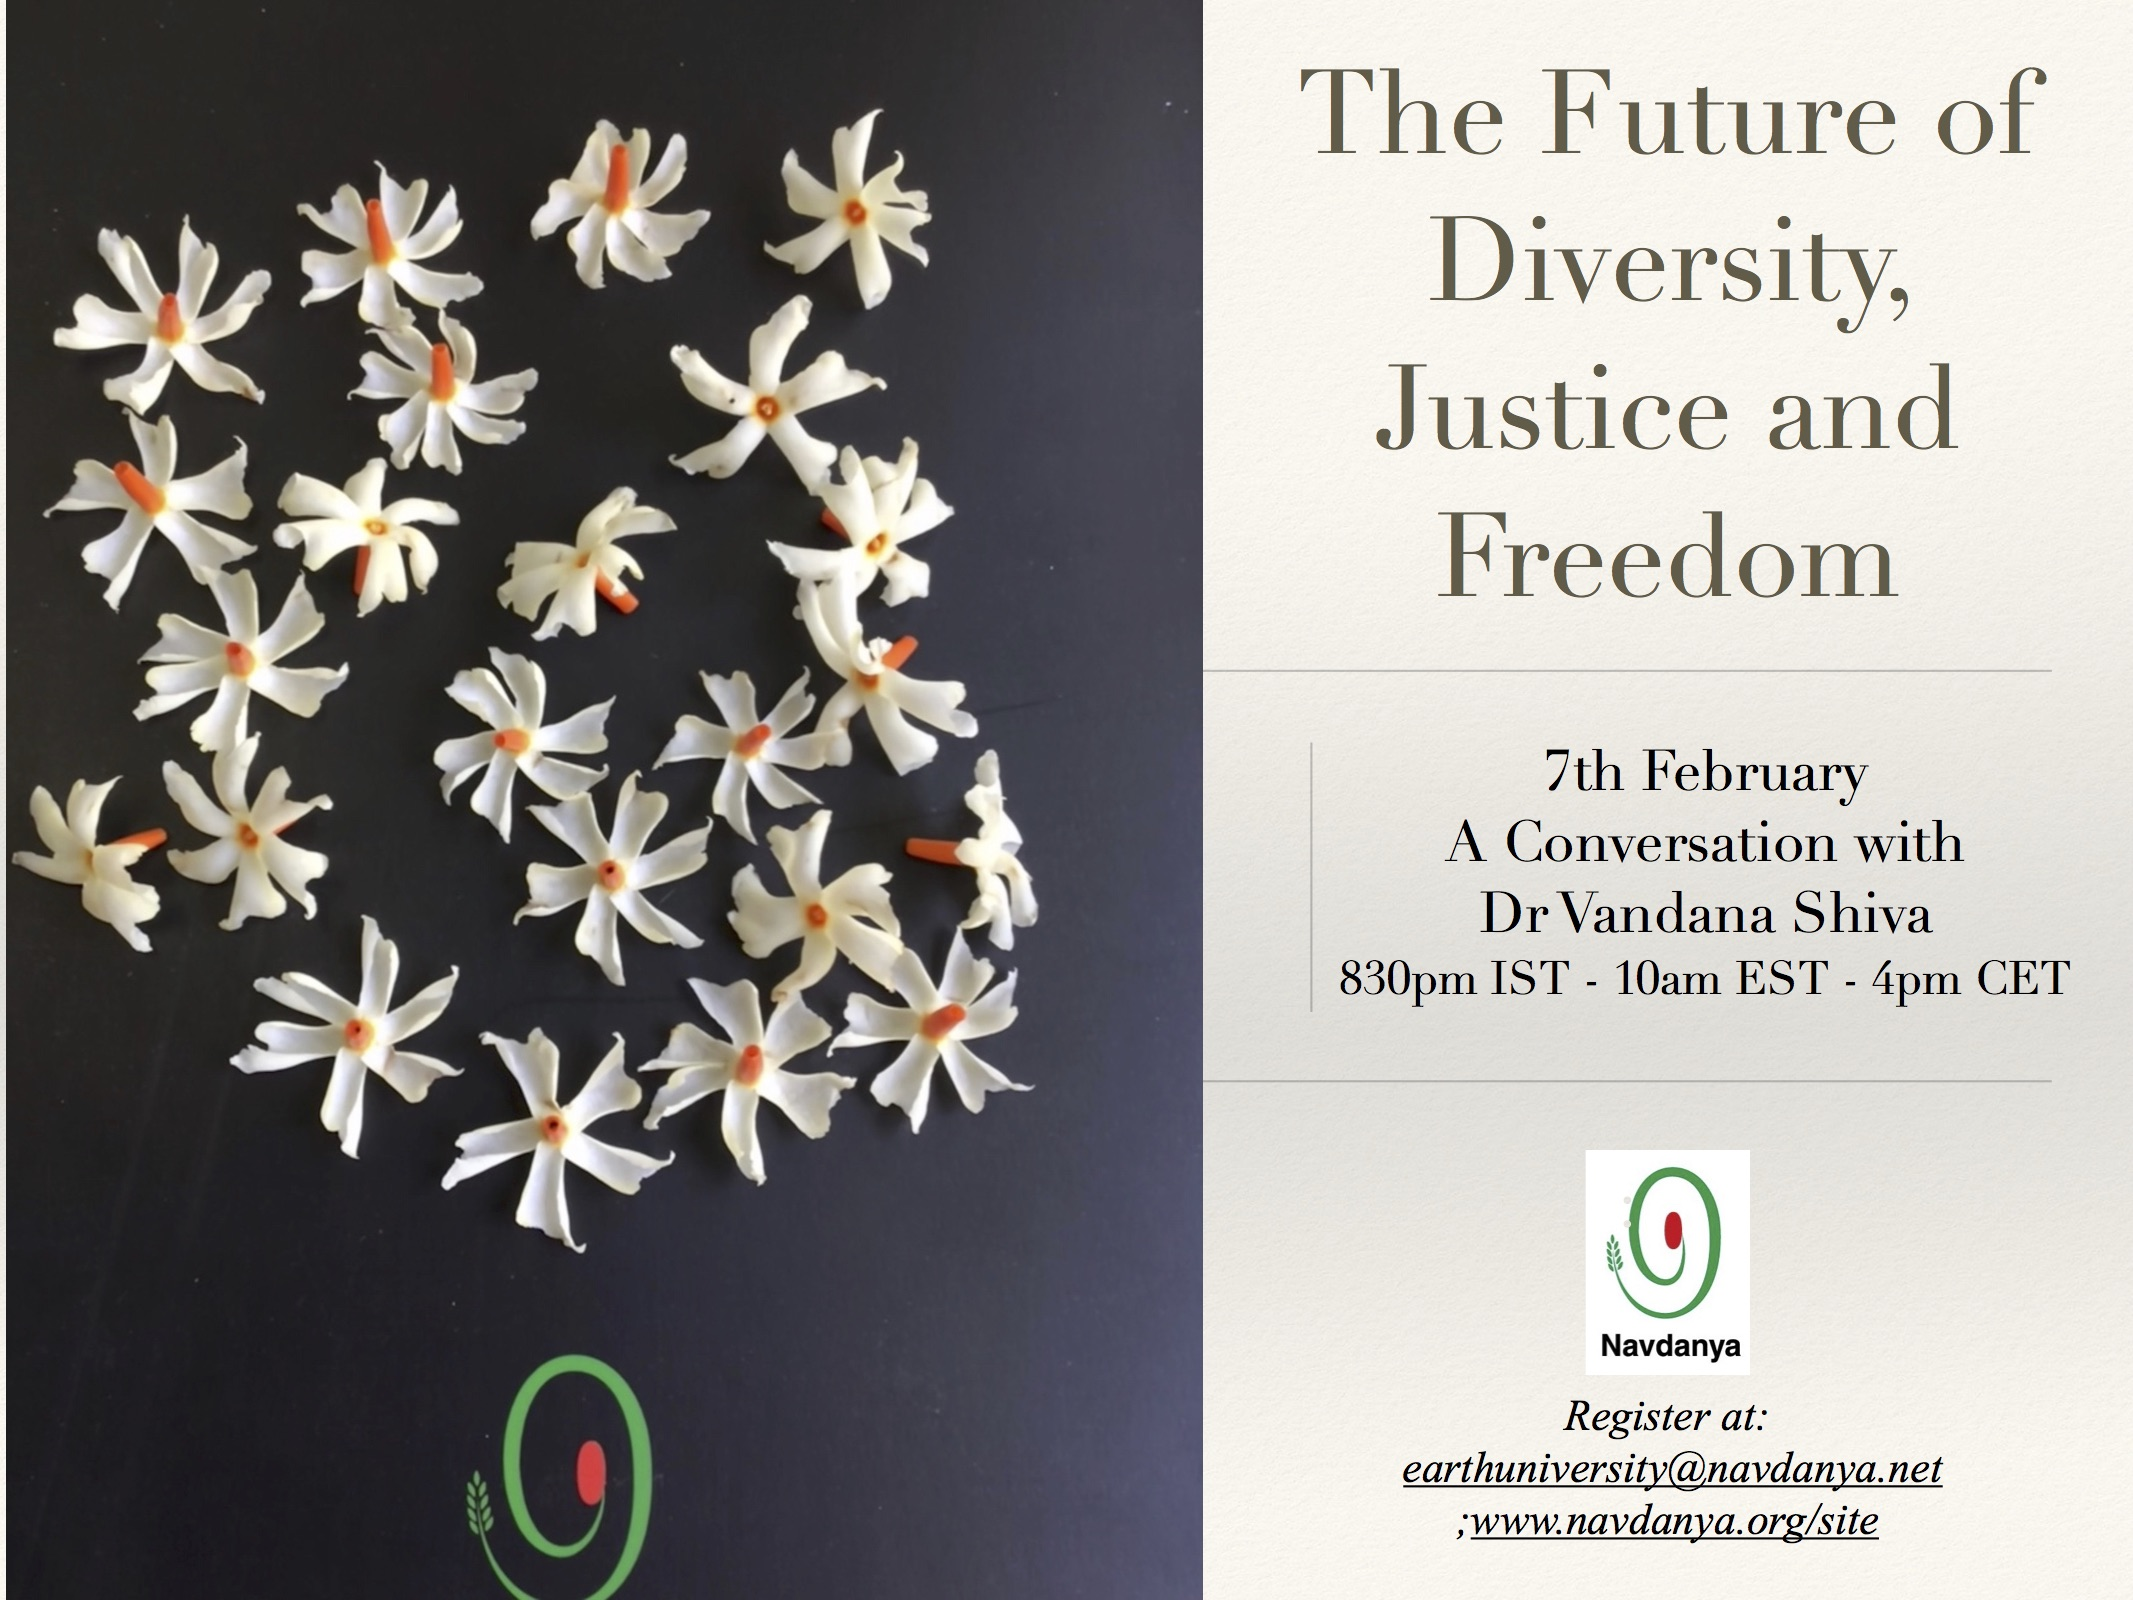 The Future of Diversity, Justice and Freedom